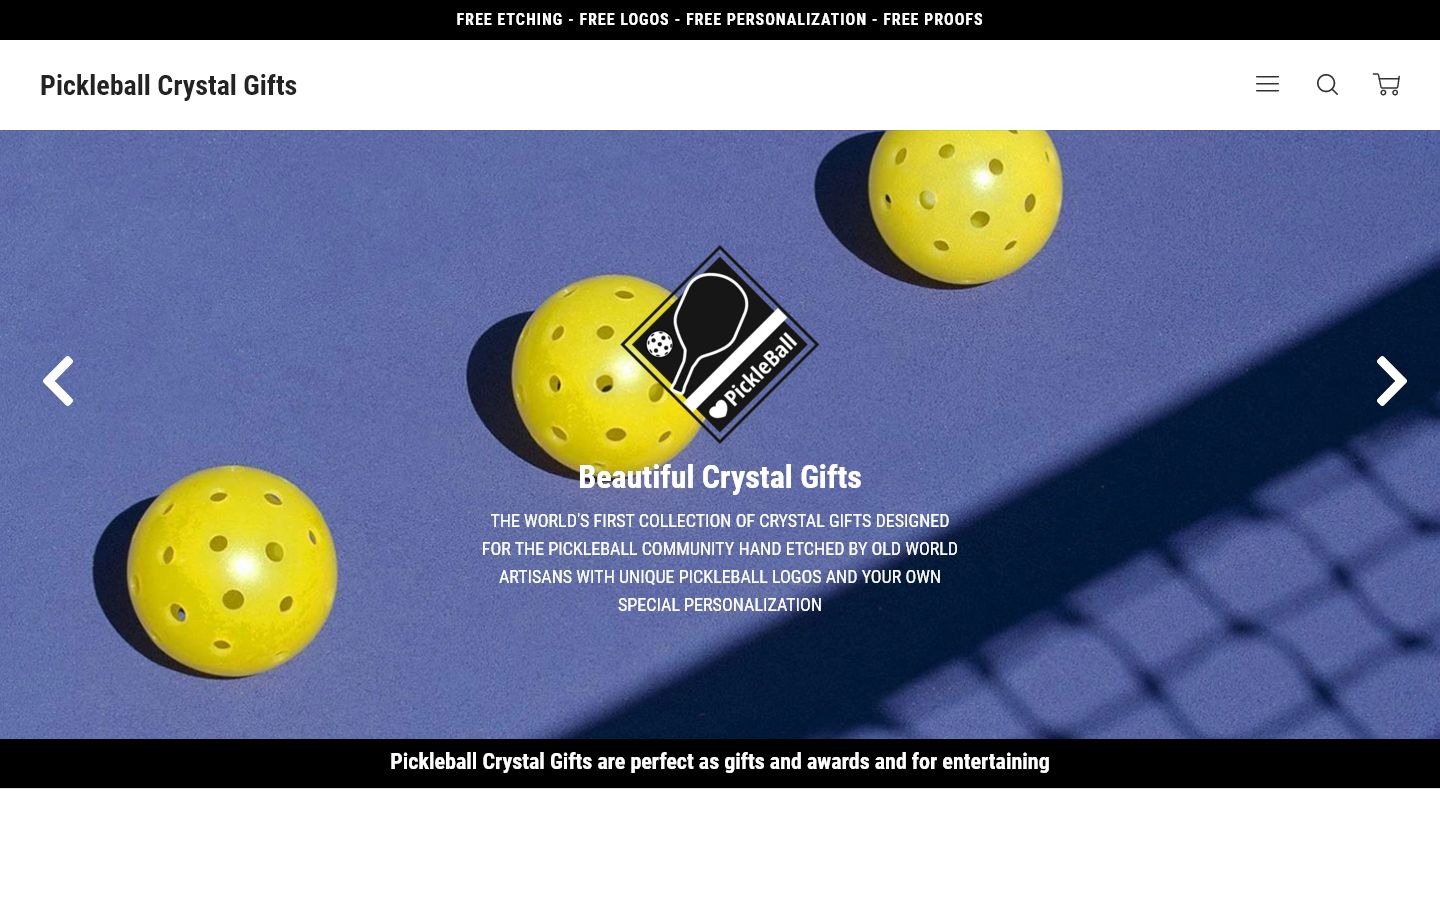 Pickleball Crystal Gifts